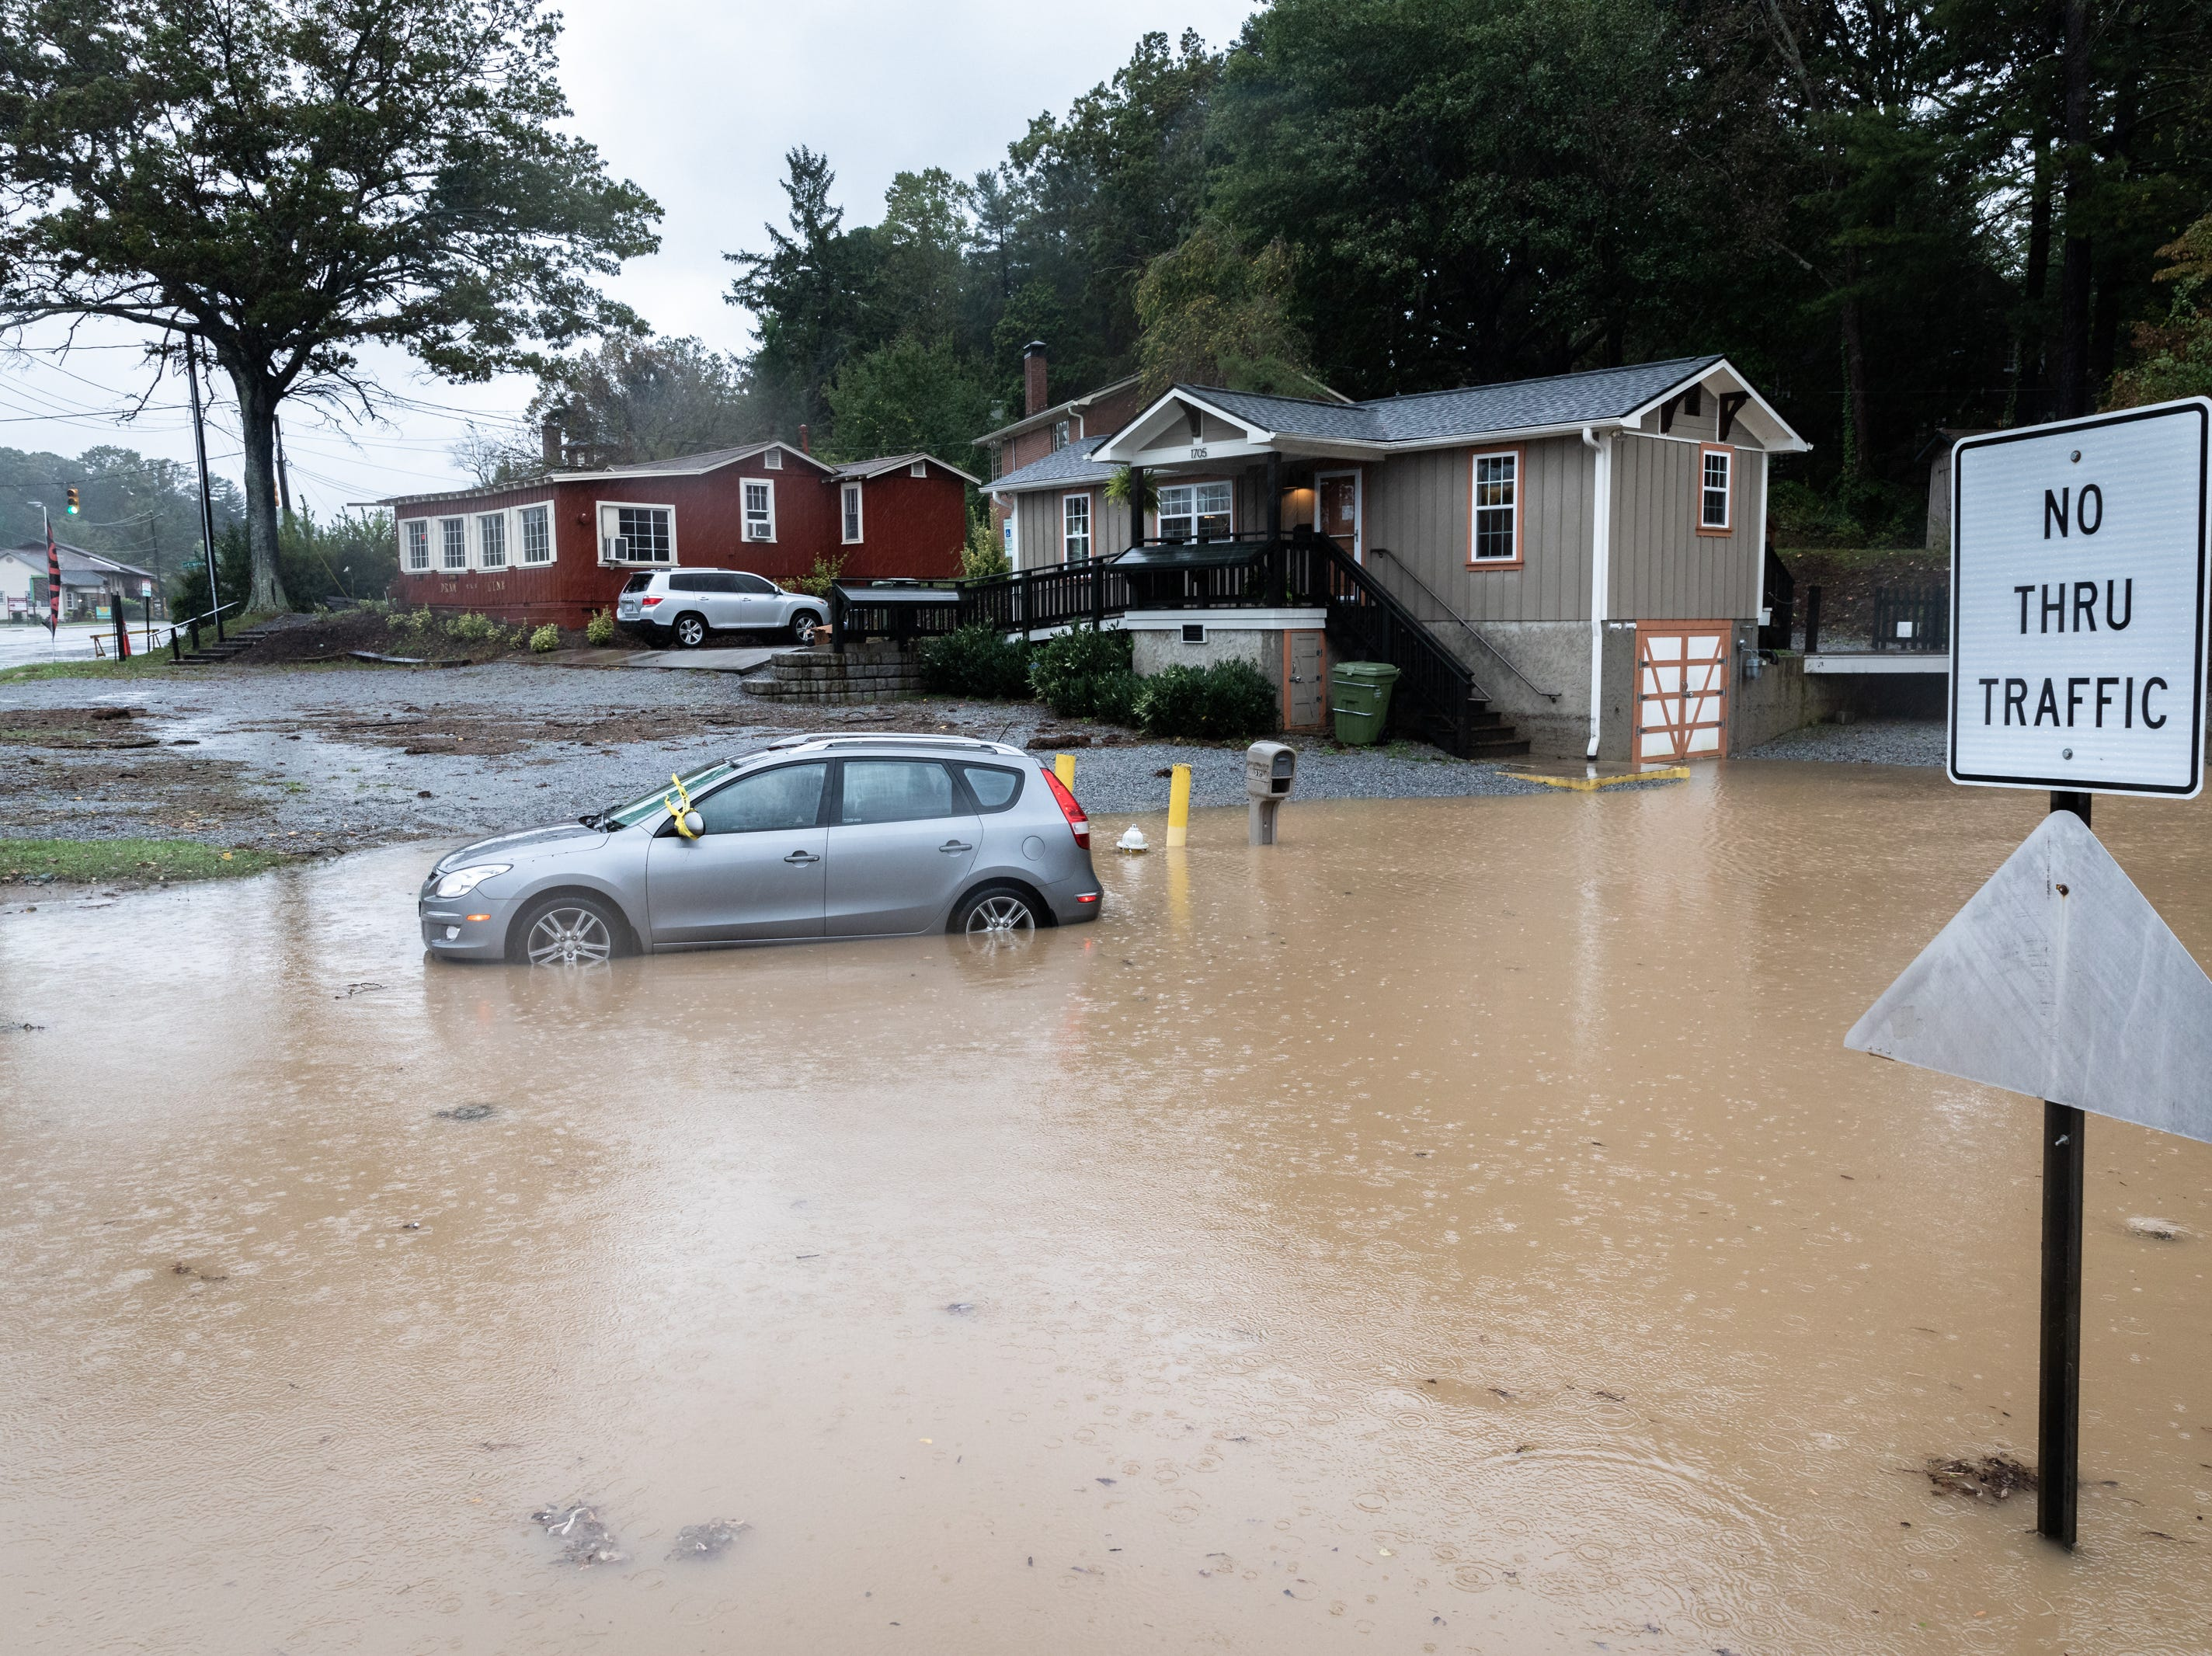 A car sits stranded in floodwaters on Meadowbrook Terrace off of Asheville Highway in Hendersonville Oct. 11, 2018.